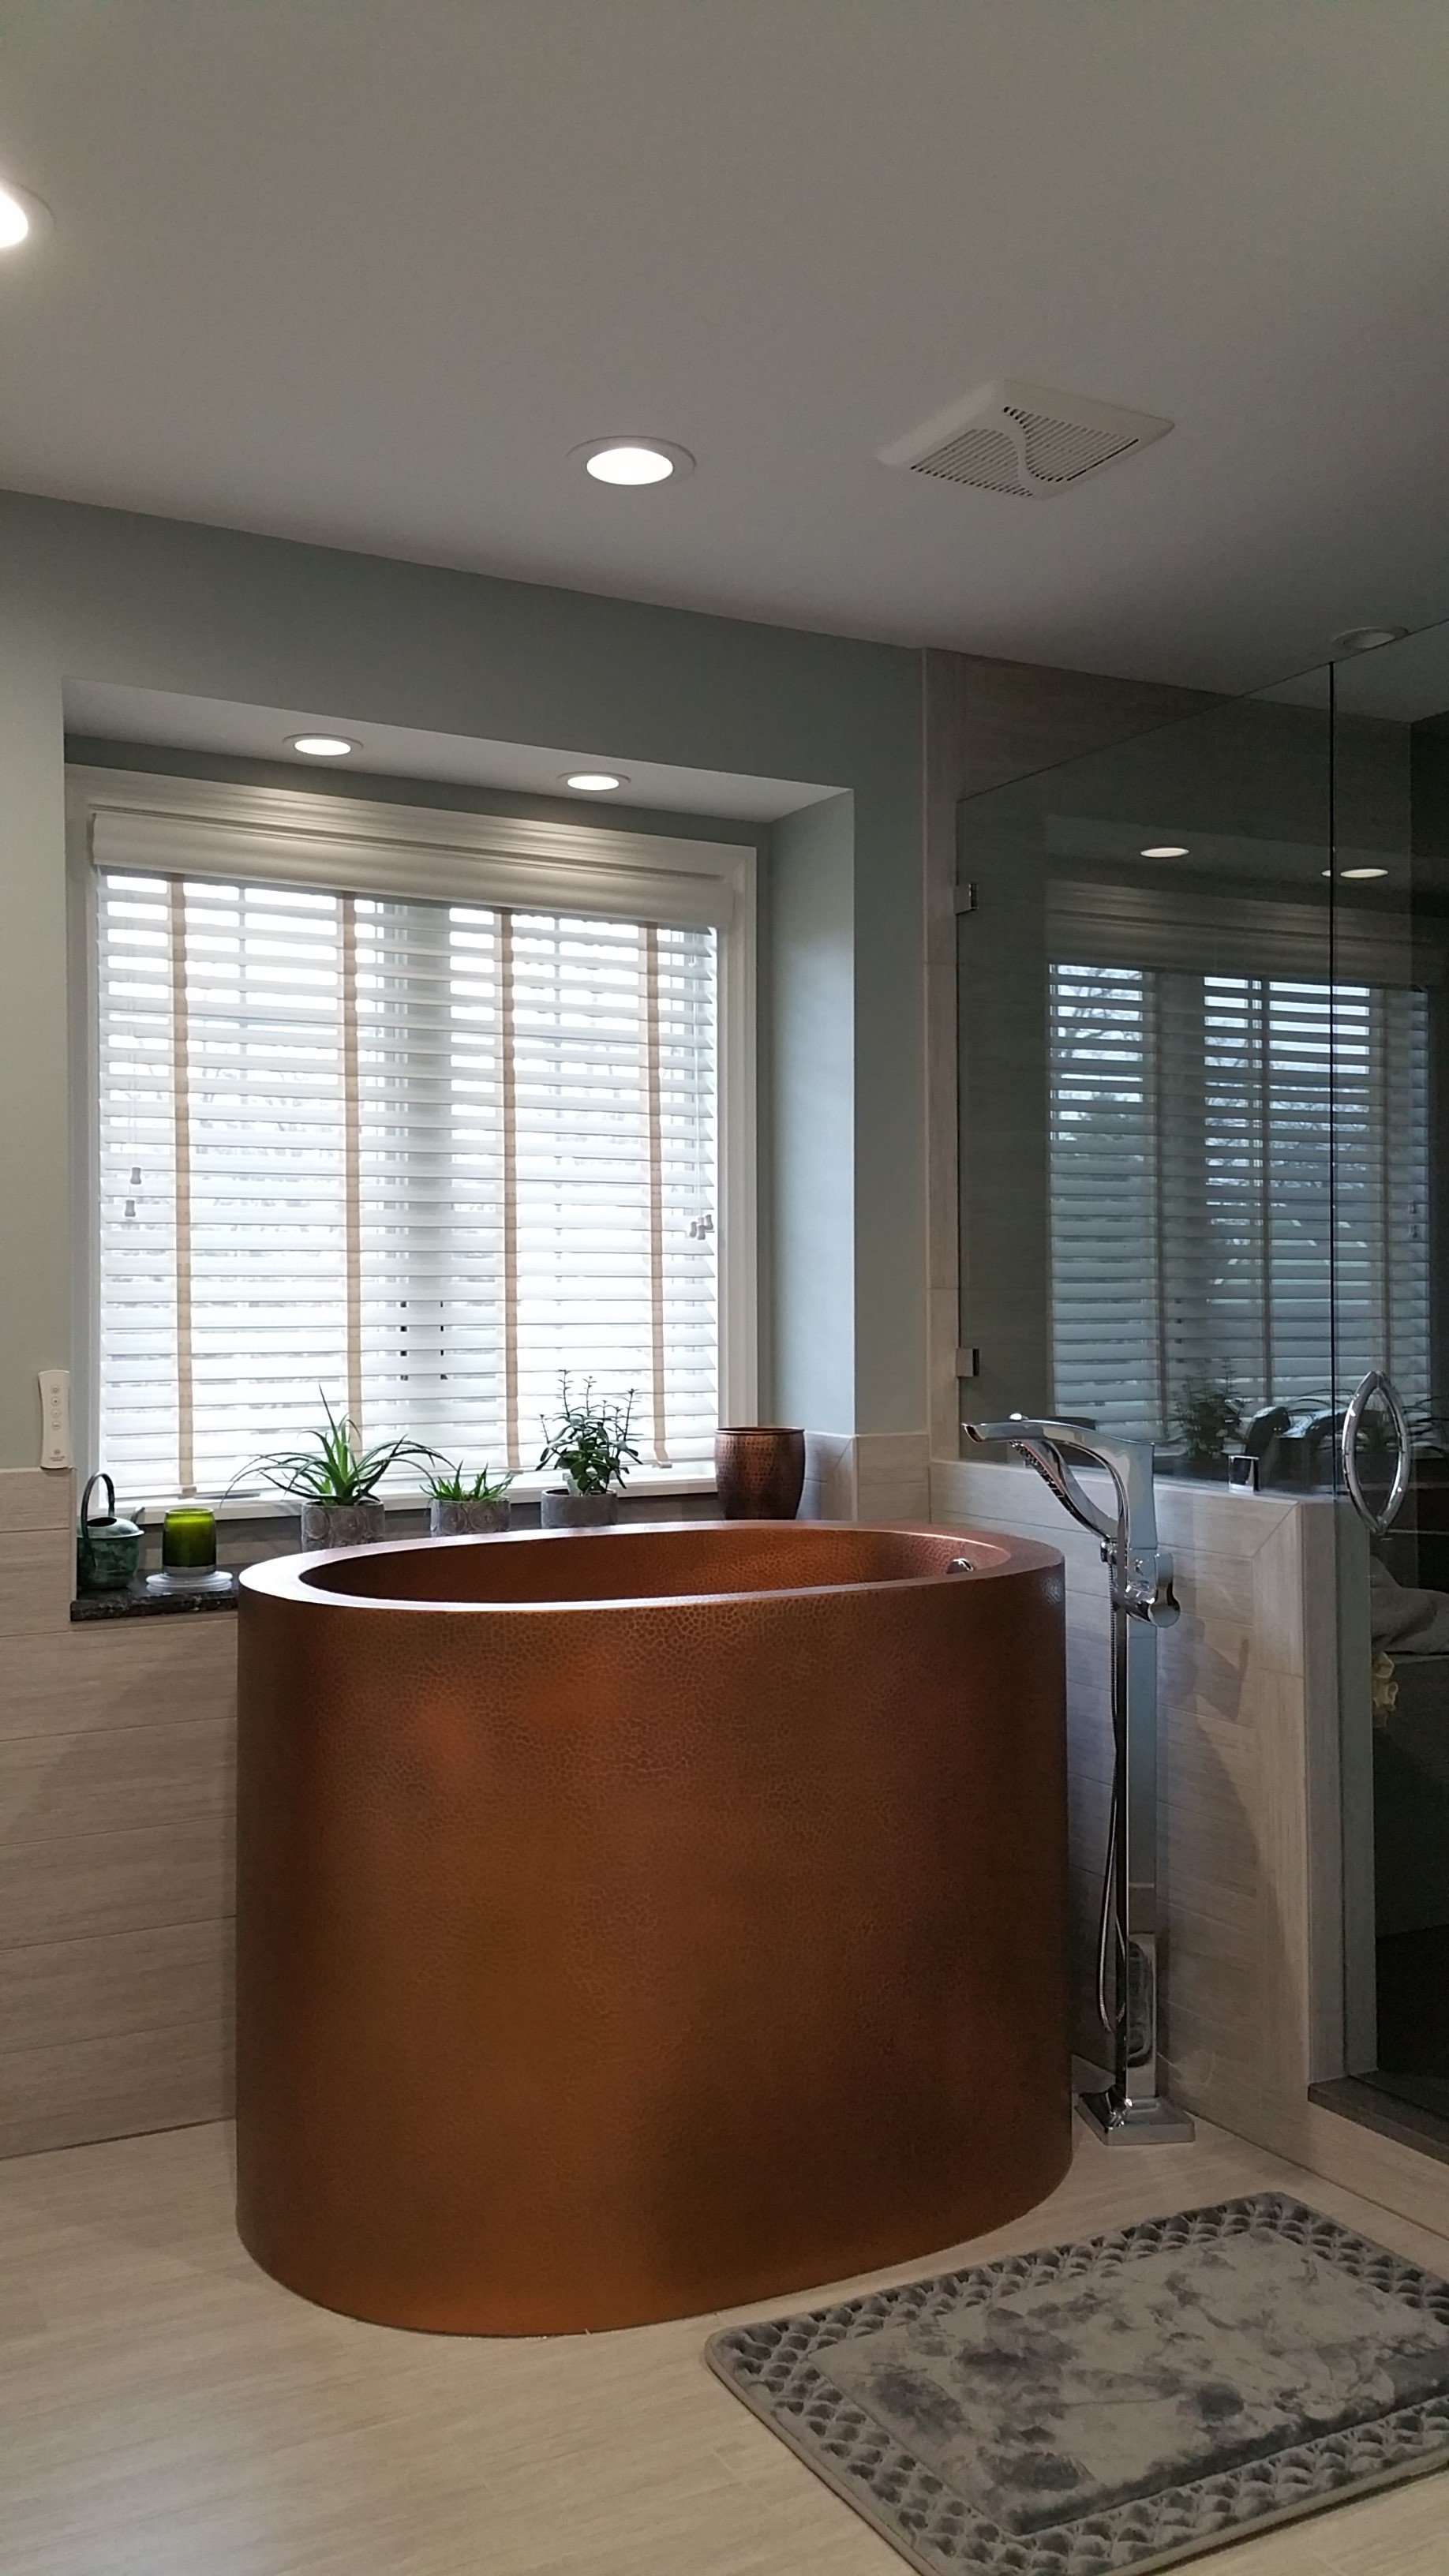 Kitchens & Baths - NorthPoint Remodeling